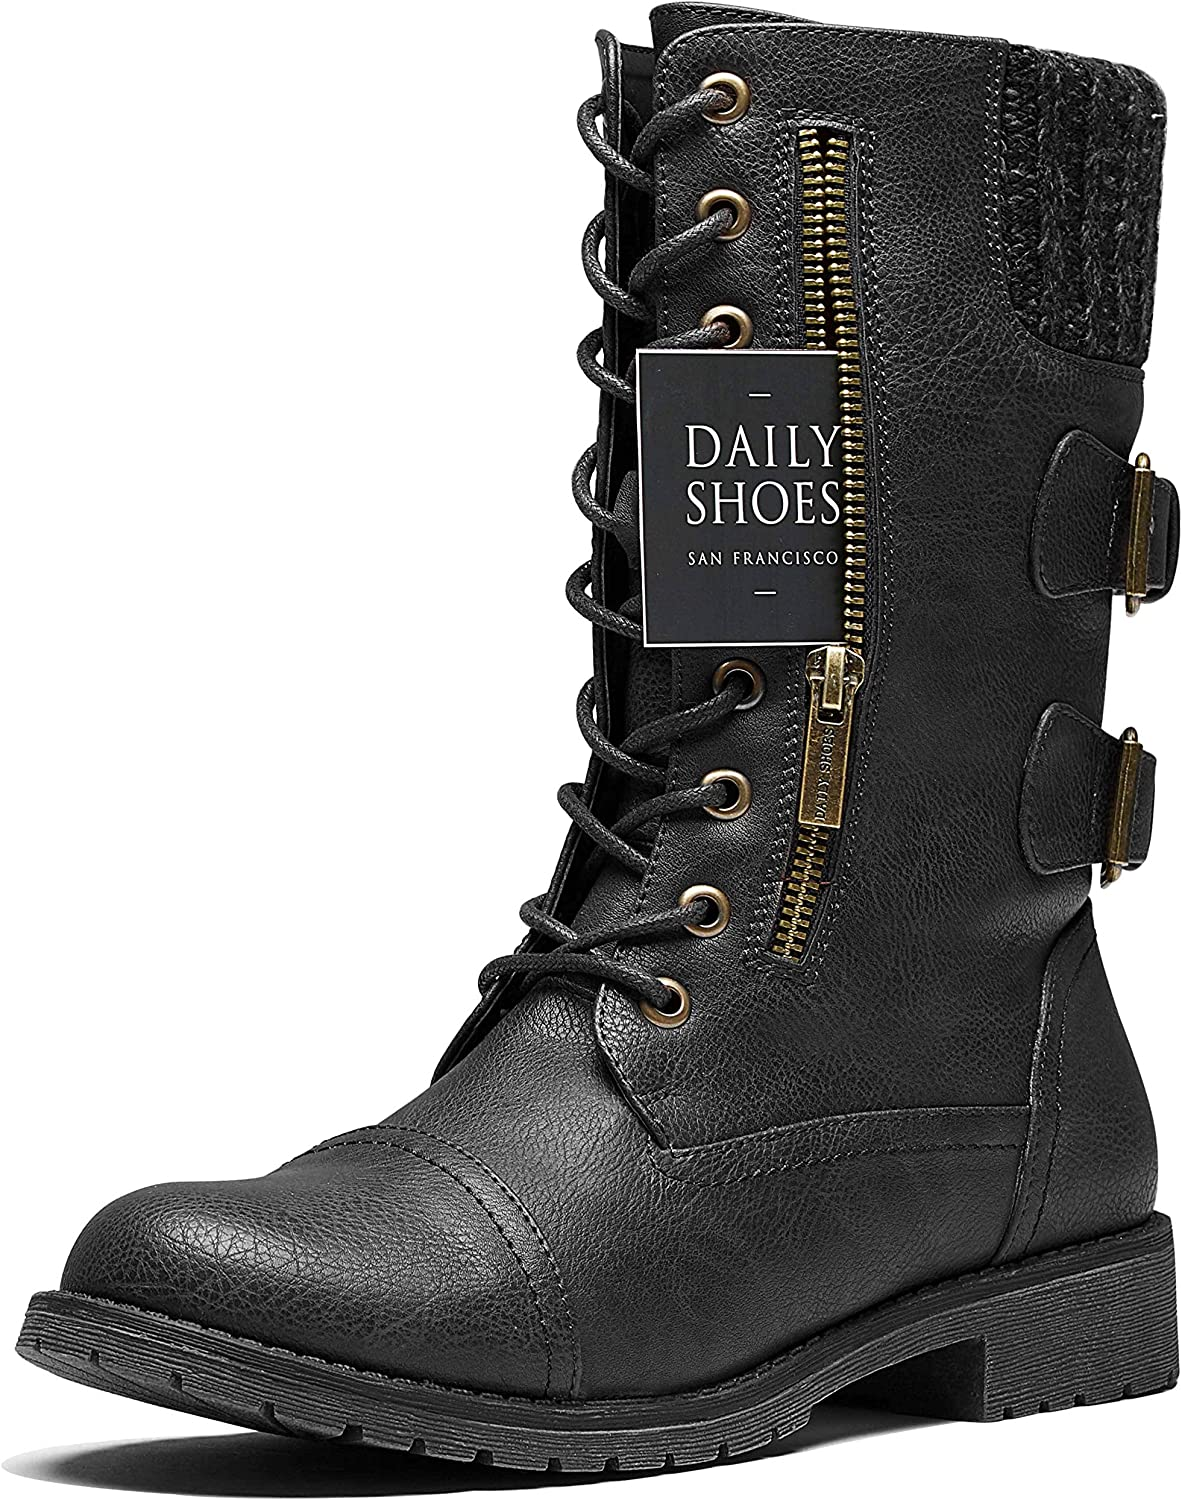 DailyShoes Women's Ankle High Exclusive Credit Card Side Back sweater Pocket Hiking Booties